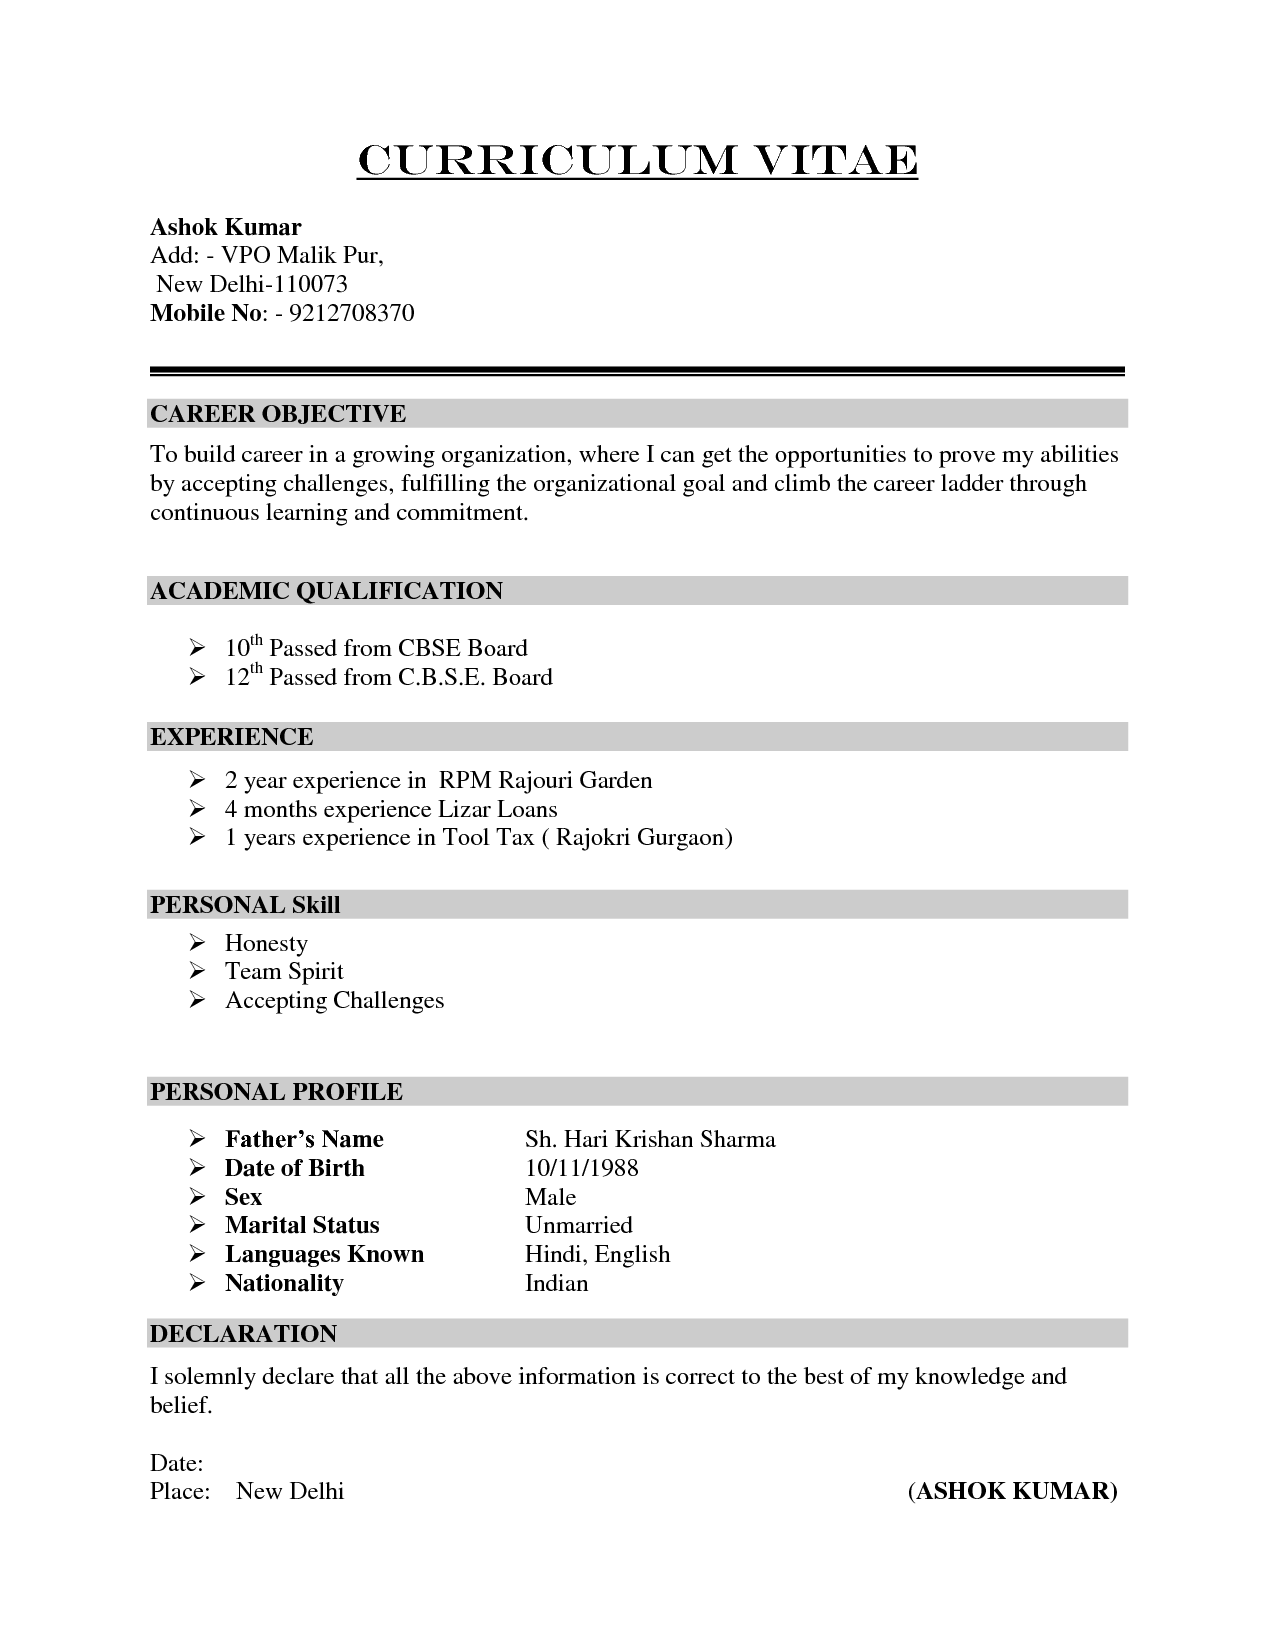 Curriculum Vitae Cv Samples | Fotolip.Rich image and wallpaper